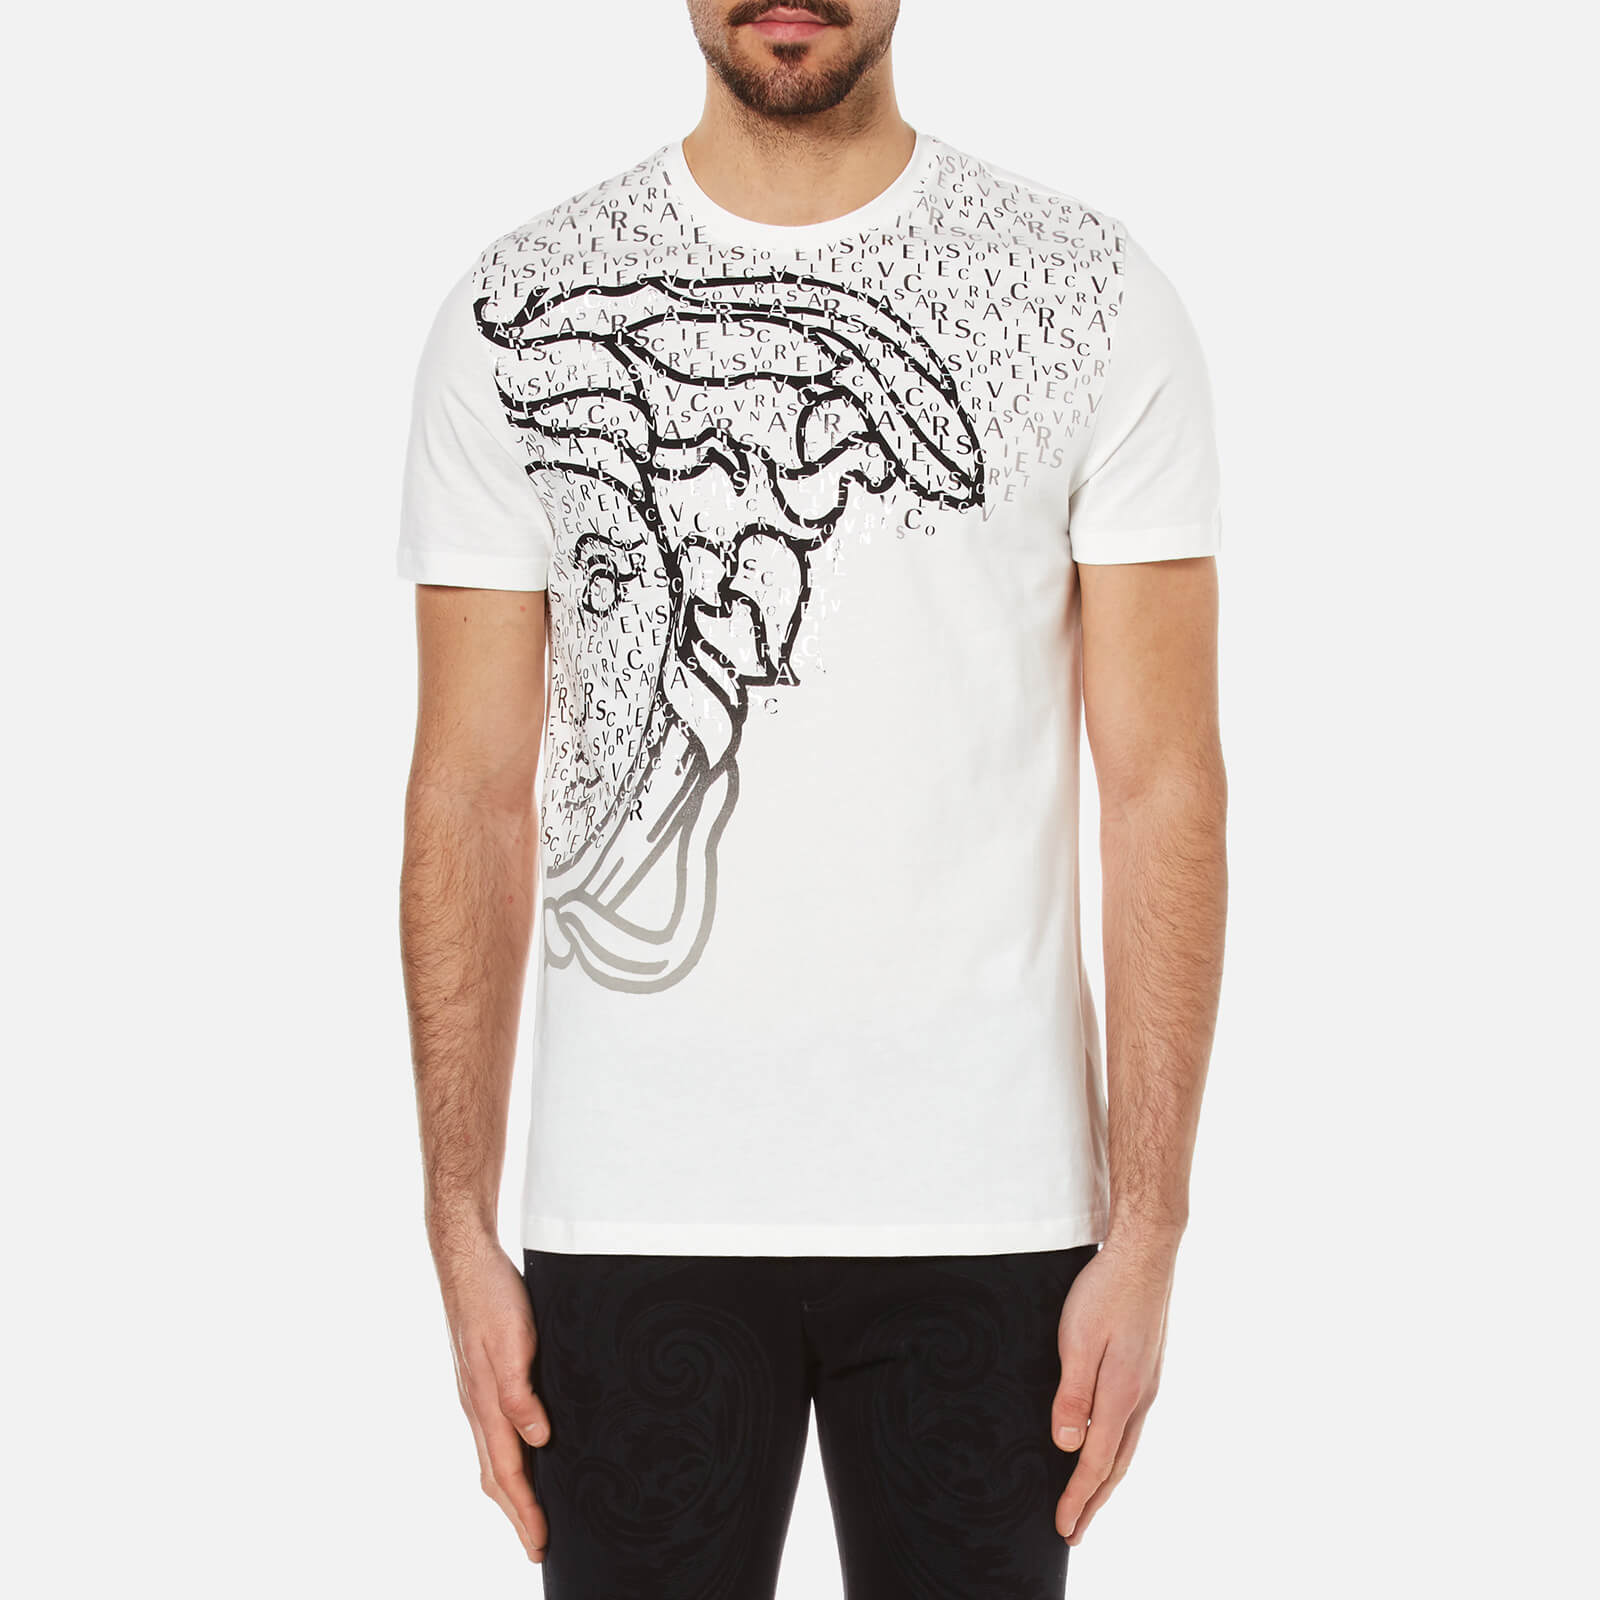 6fc039fd Versace Collection Men's Half Medusa Head and Branded Printed T-Shirt -  White - Free UK Delivery over £50